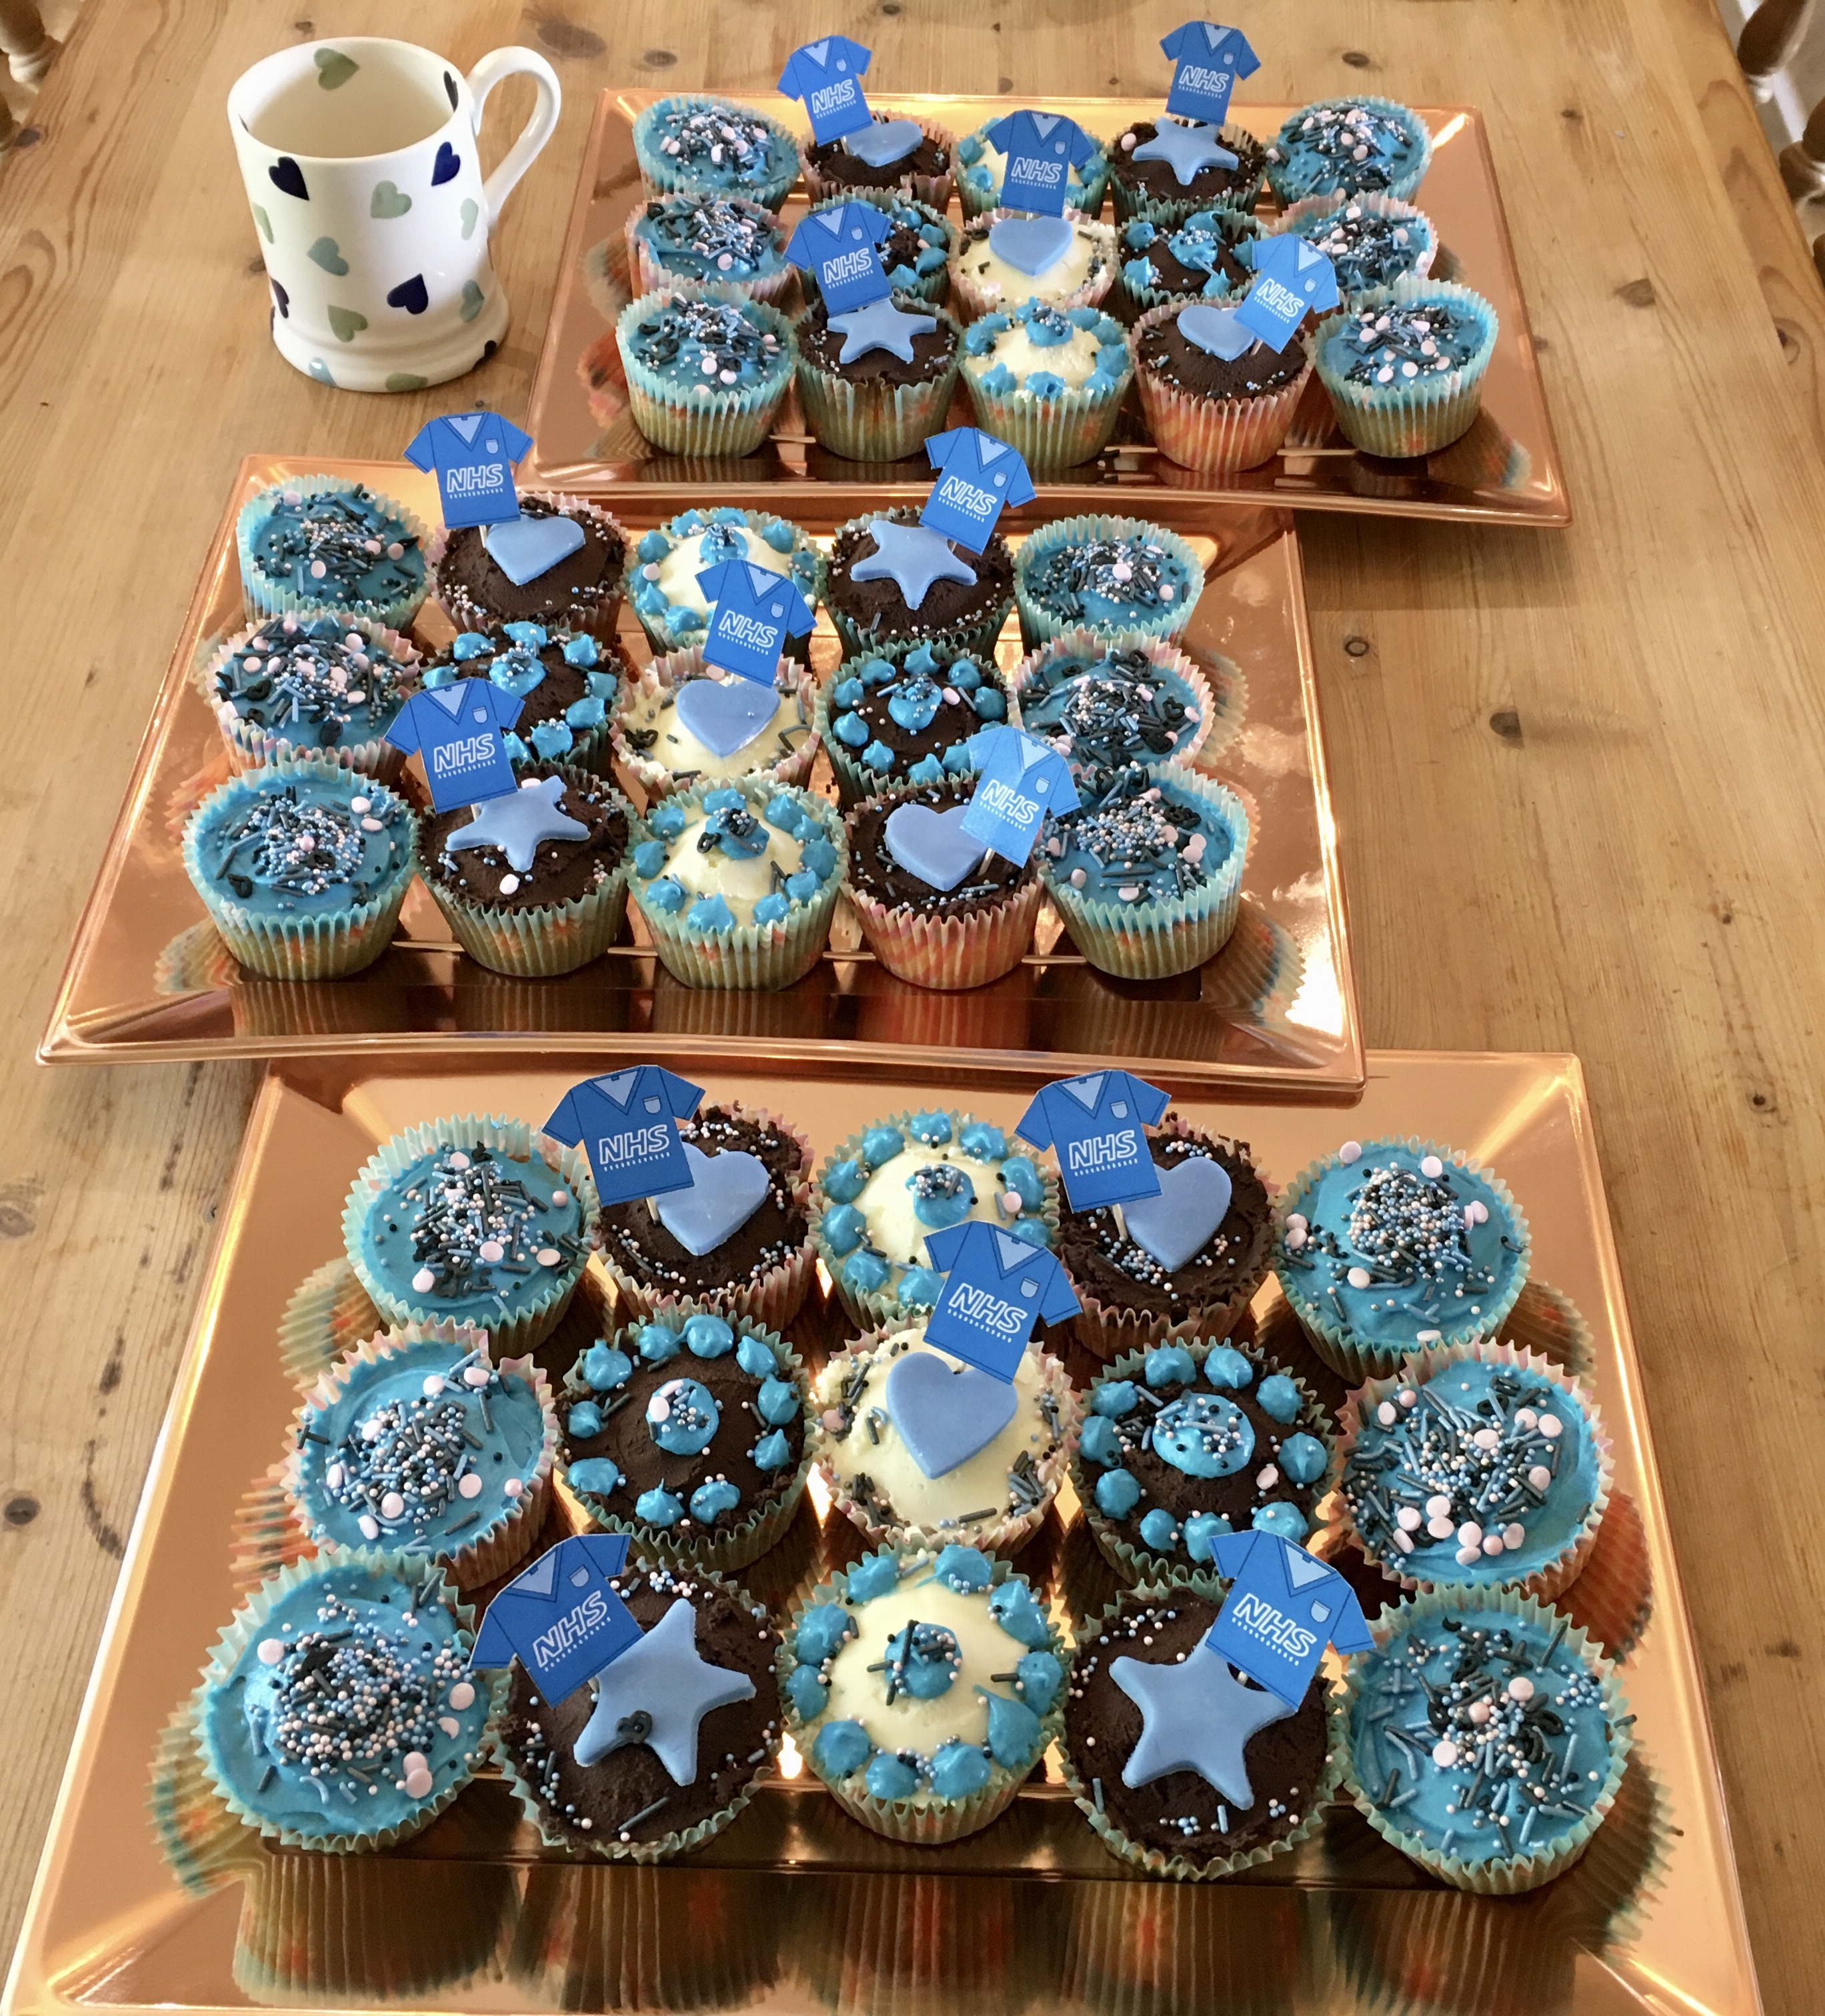 21.07 thank You NHS cup cakes